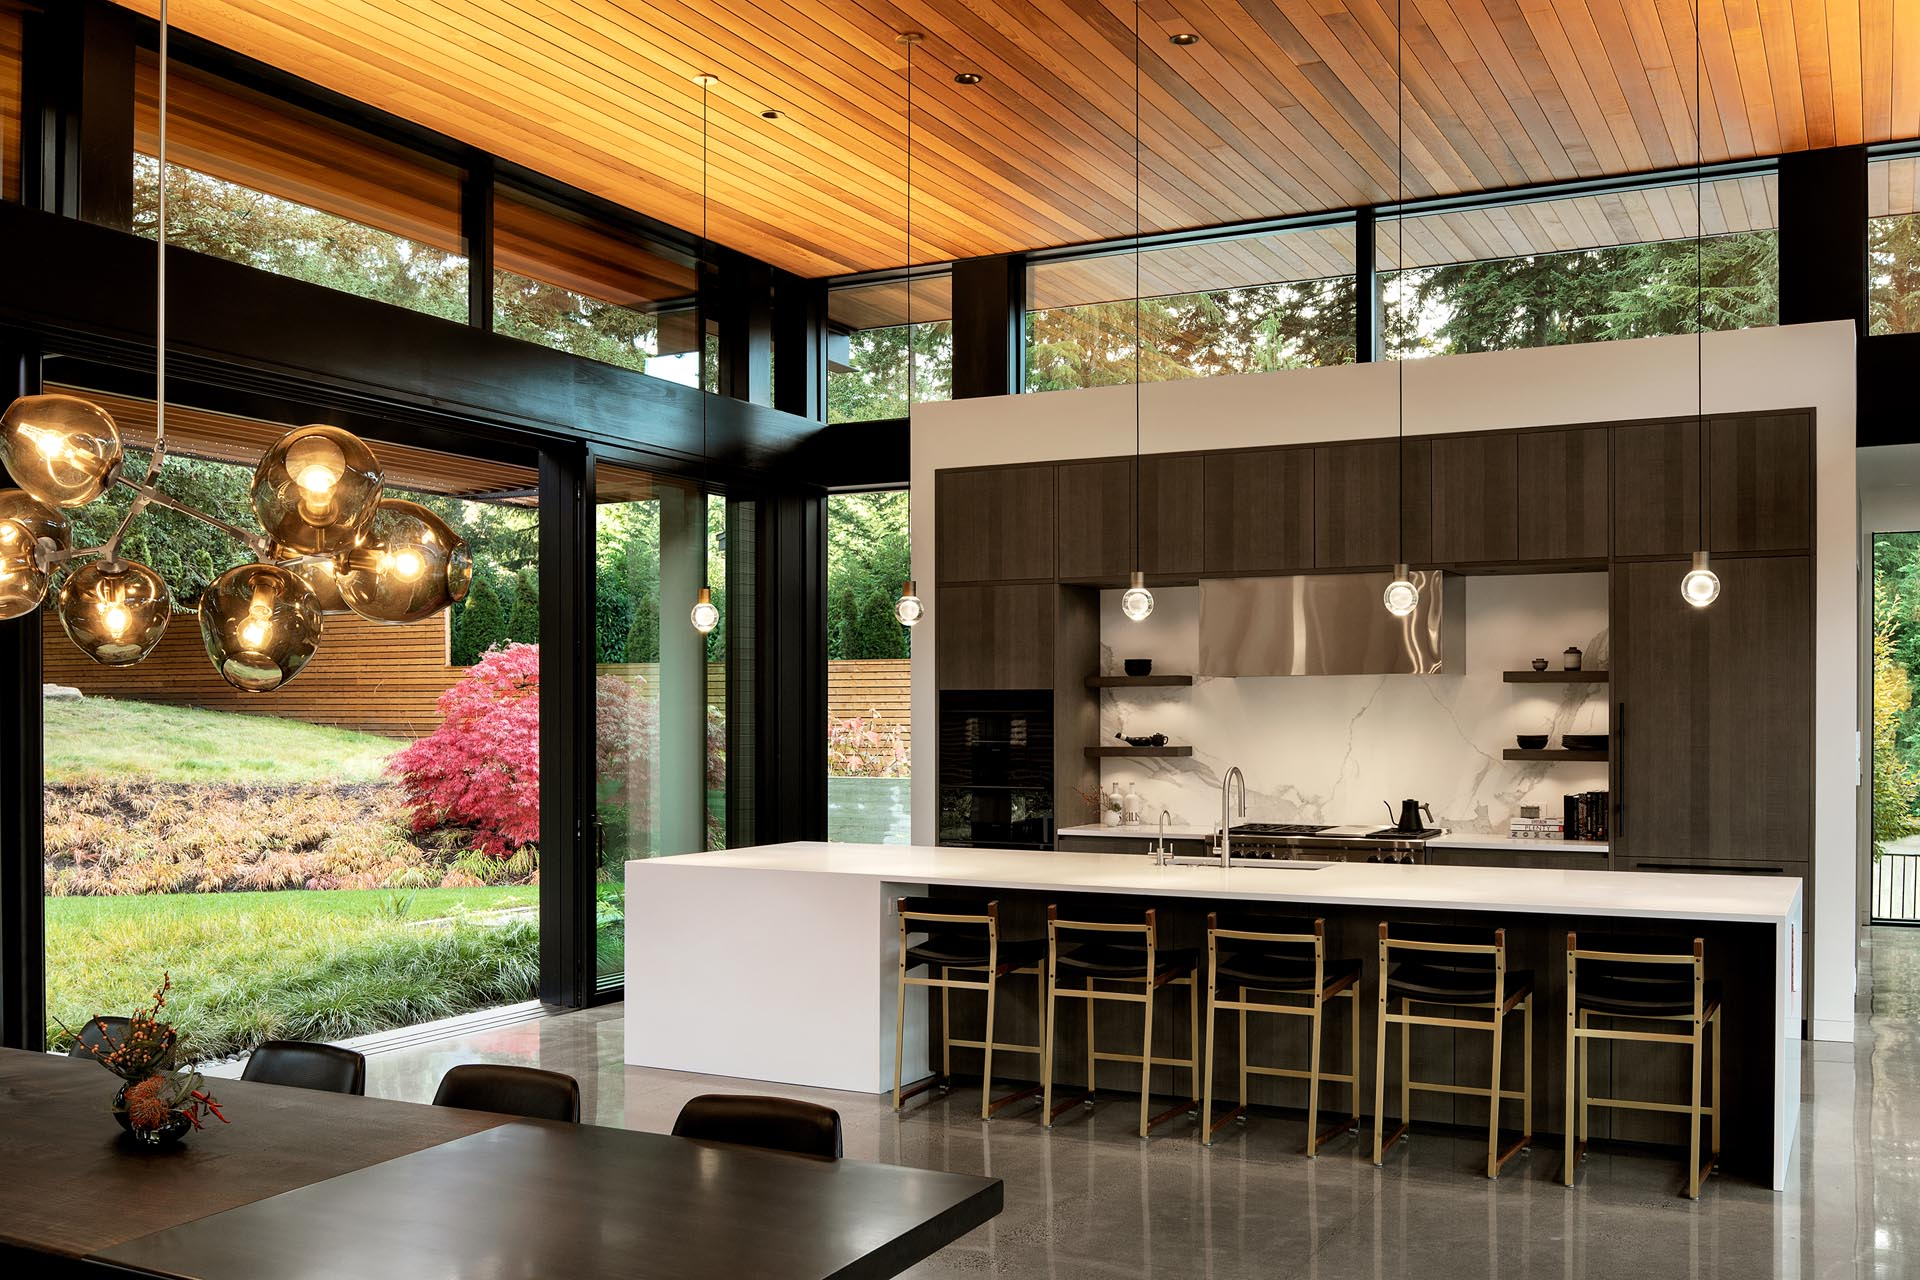 A modern wood and white kitchen with a long island.